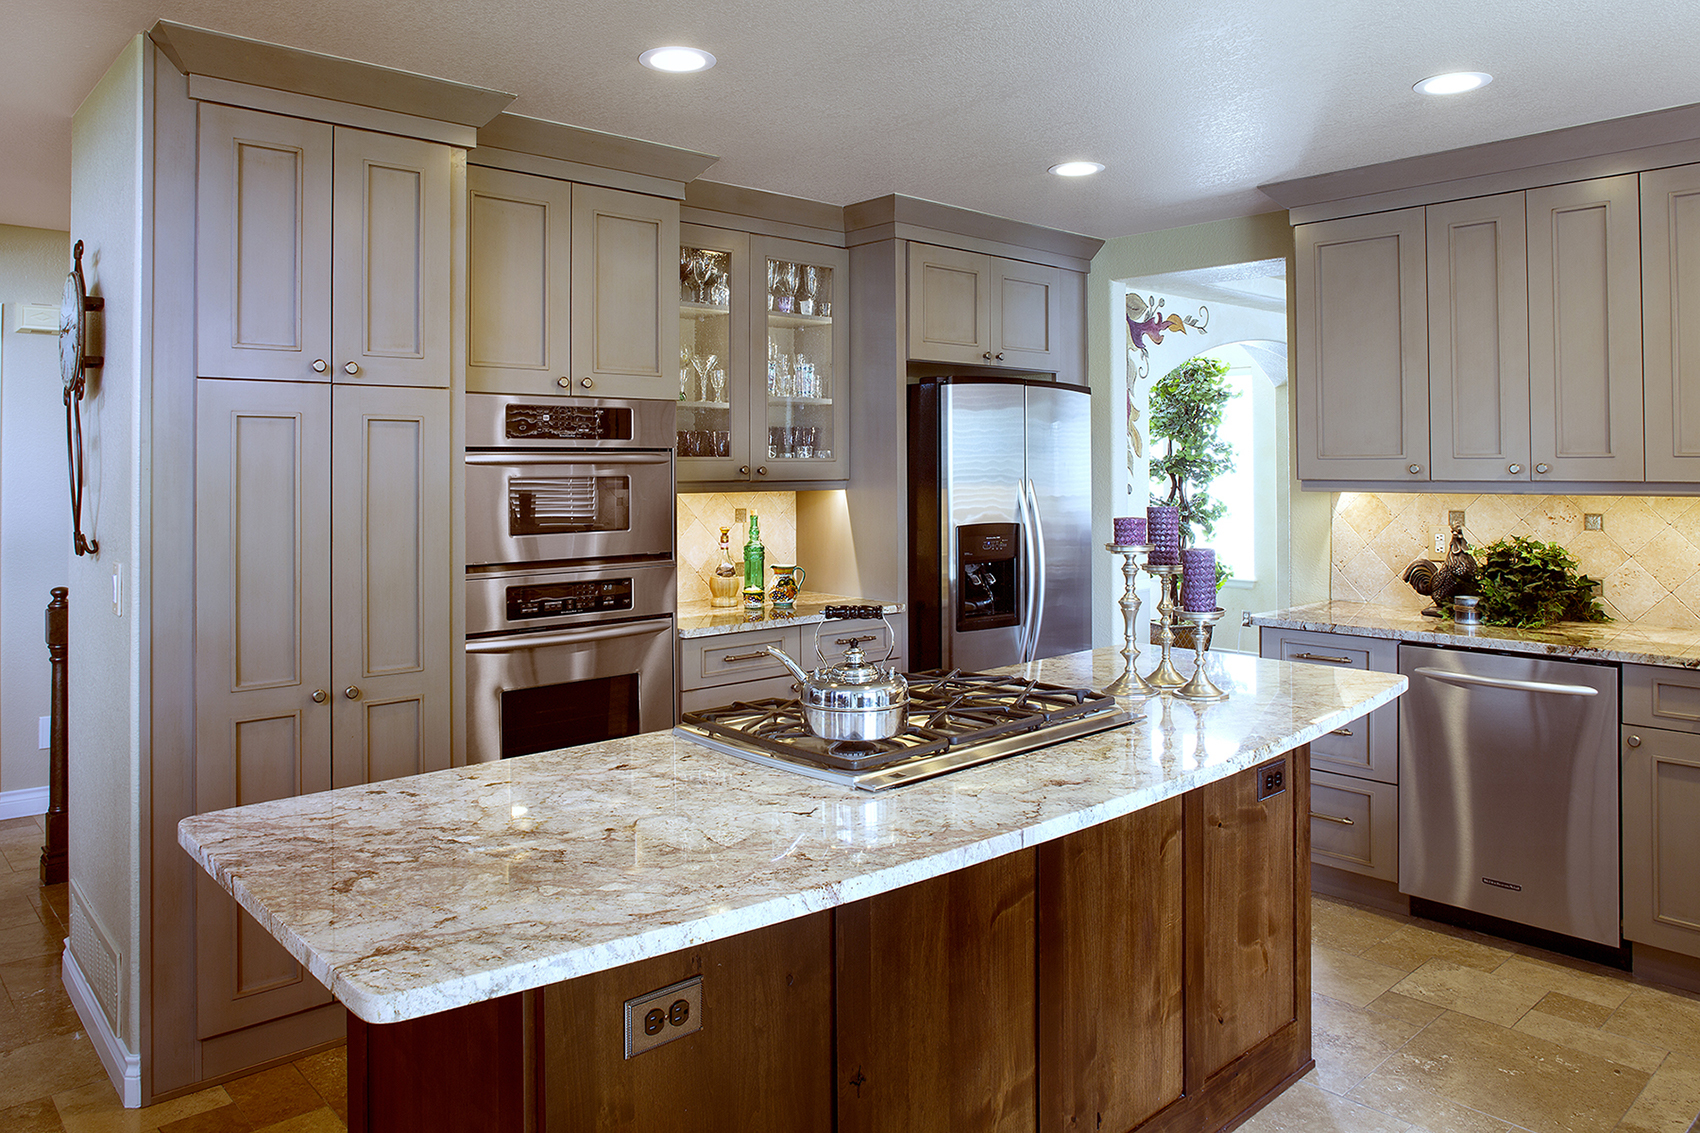 Painted Kitchen cabinets in Light Greige and stained island in Russet by ShowplaceEVO - view 1